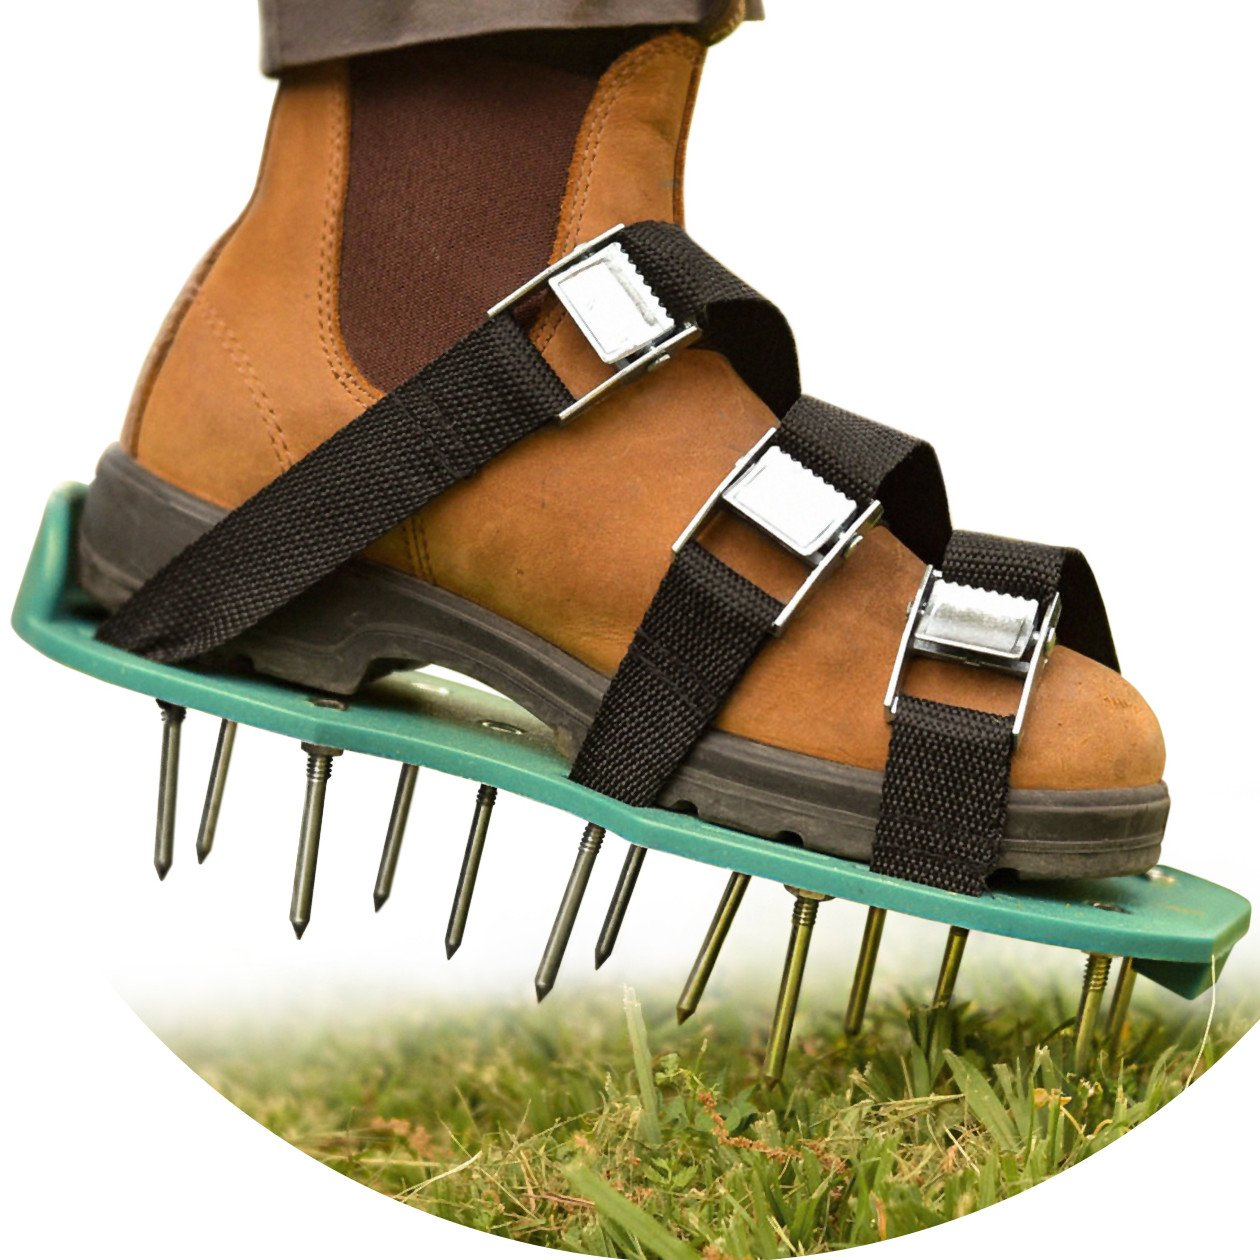 Healthy and Reviving Lawn Treatment | All-In-1 Aerator Shoes | Heavy Duty Spiked Shoes, 2'' Long Steel Nails, 3 Adjustable Durable Straps With Metal Buckles | 2 Extra Spikes and Small Wrench